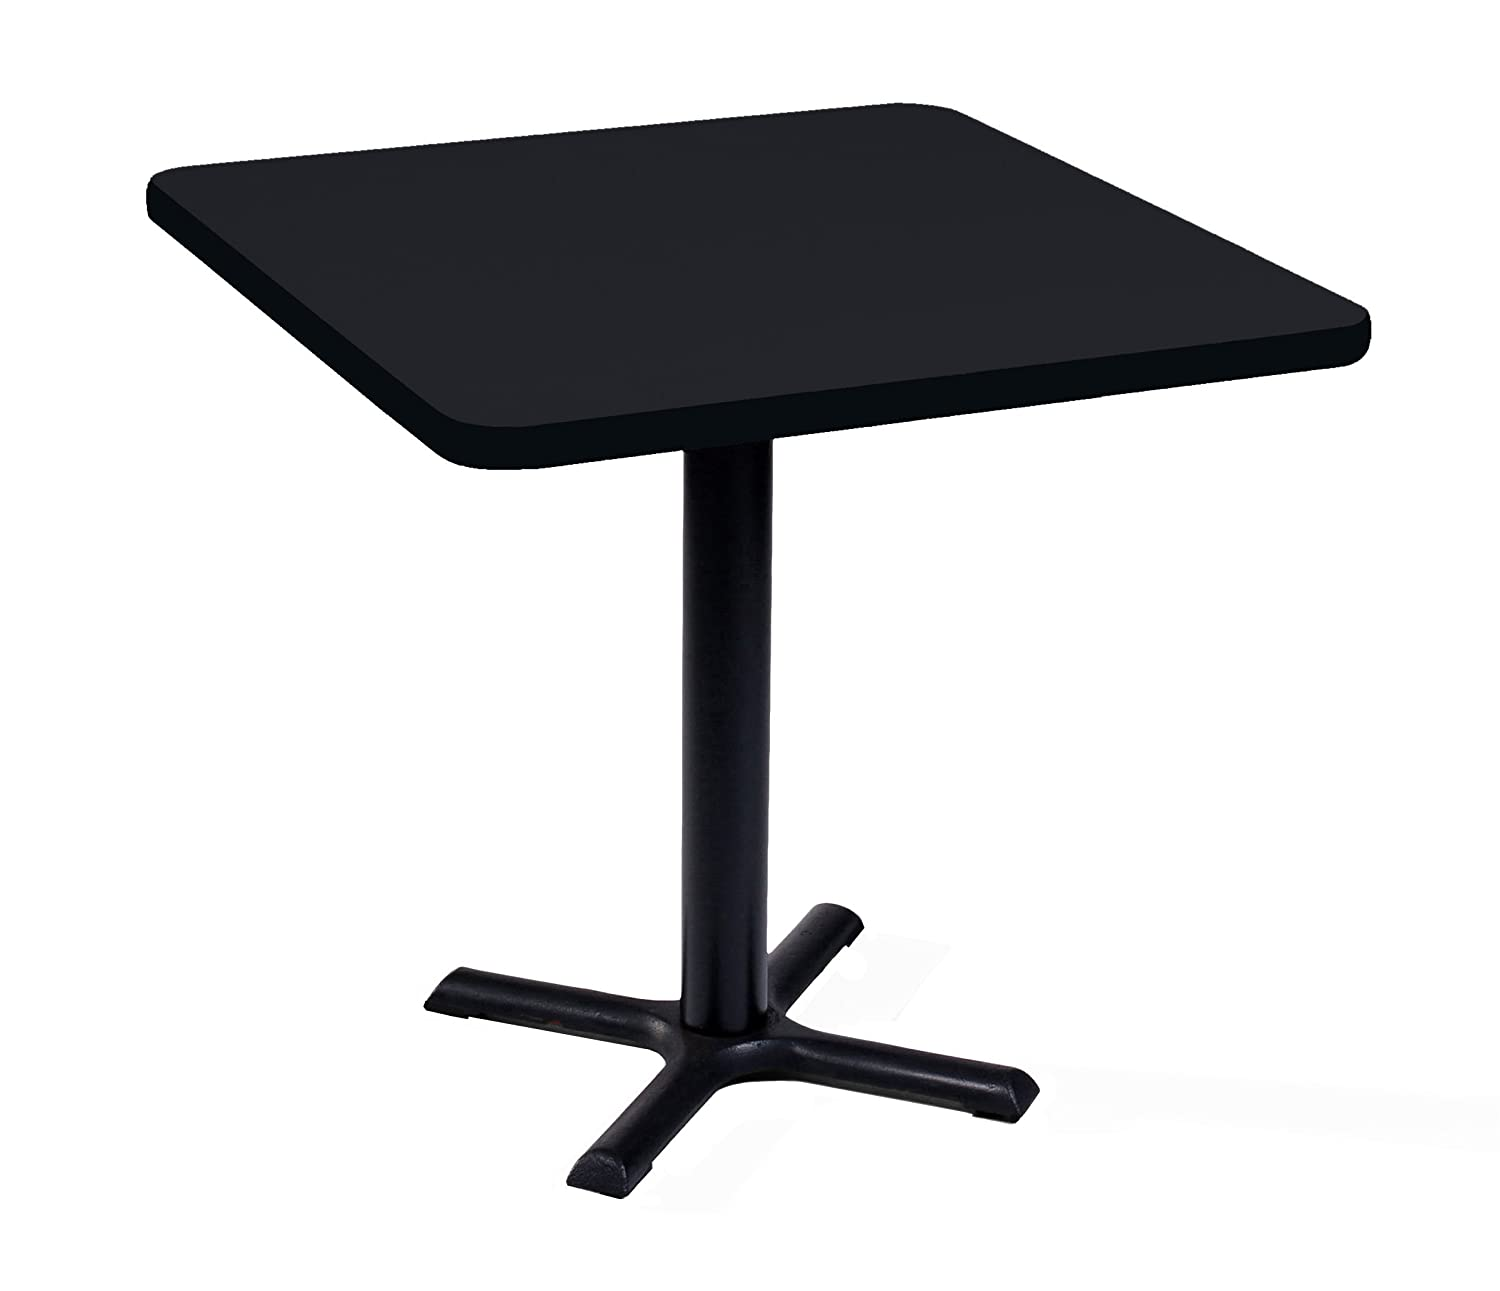 Correll BXT30S-07 Black Granite Top and Black Base Square Bar, Caf and Break Room Table, 30